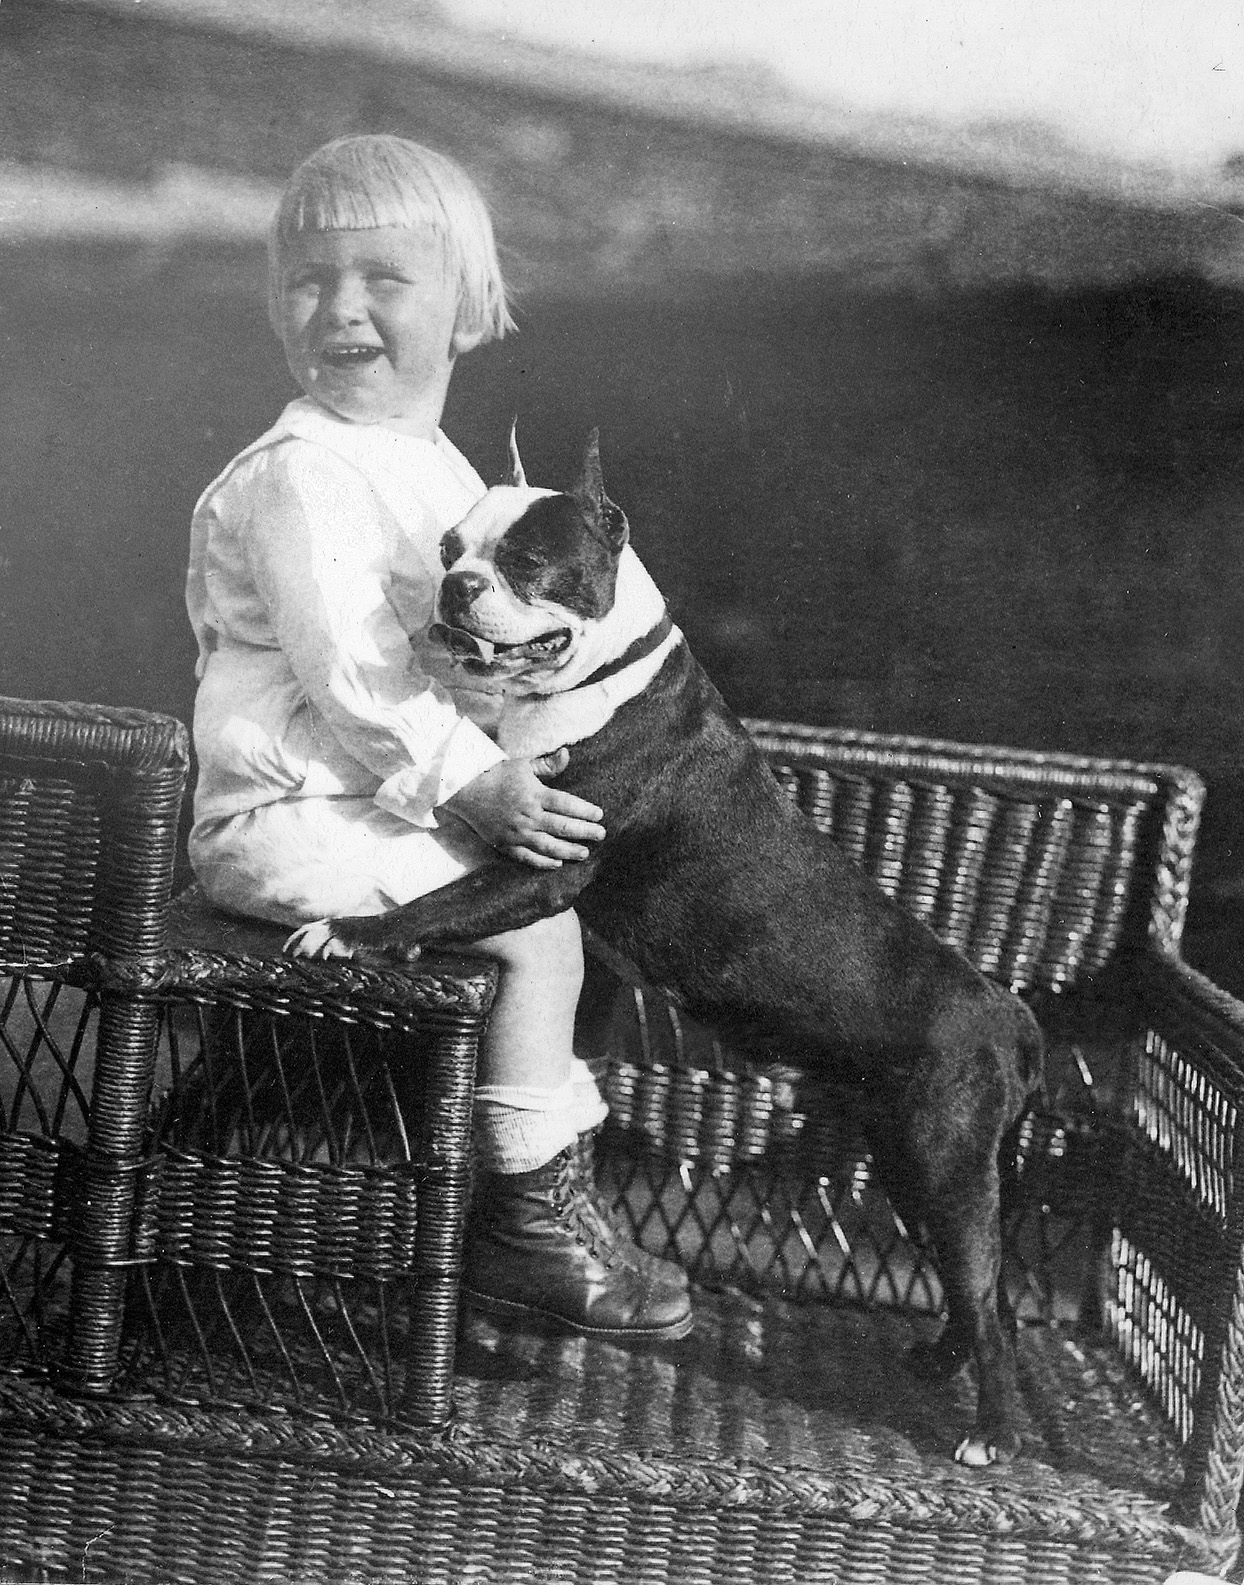 Young Gerald Ford with Boston terrier